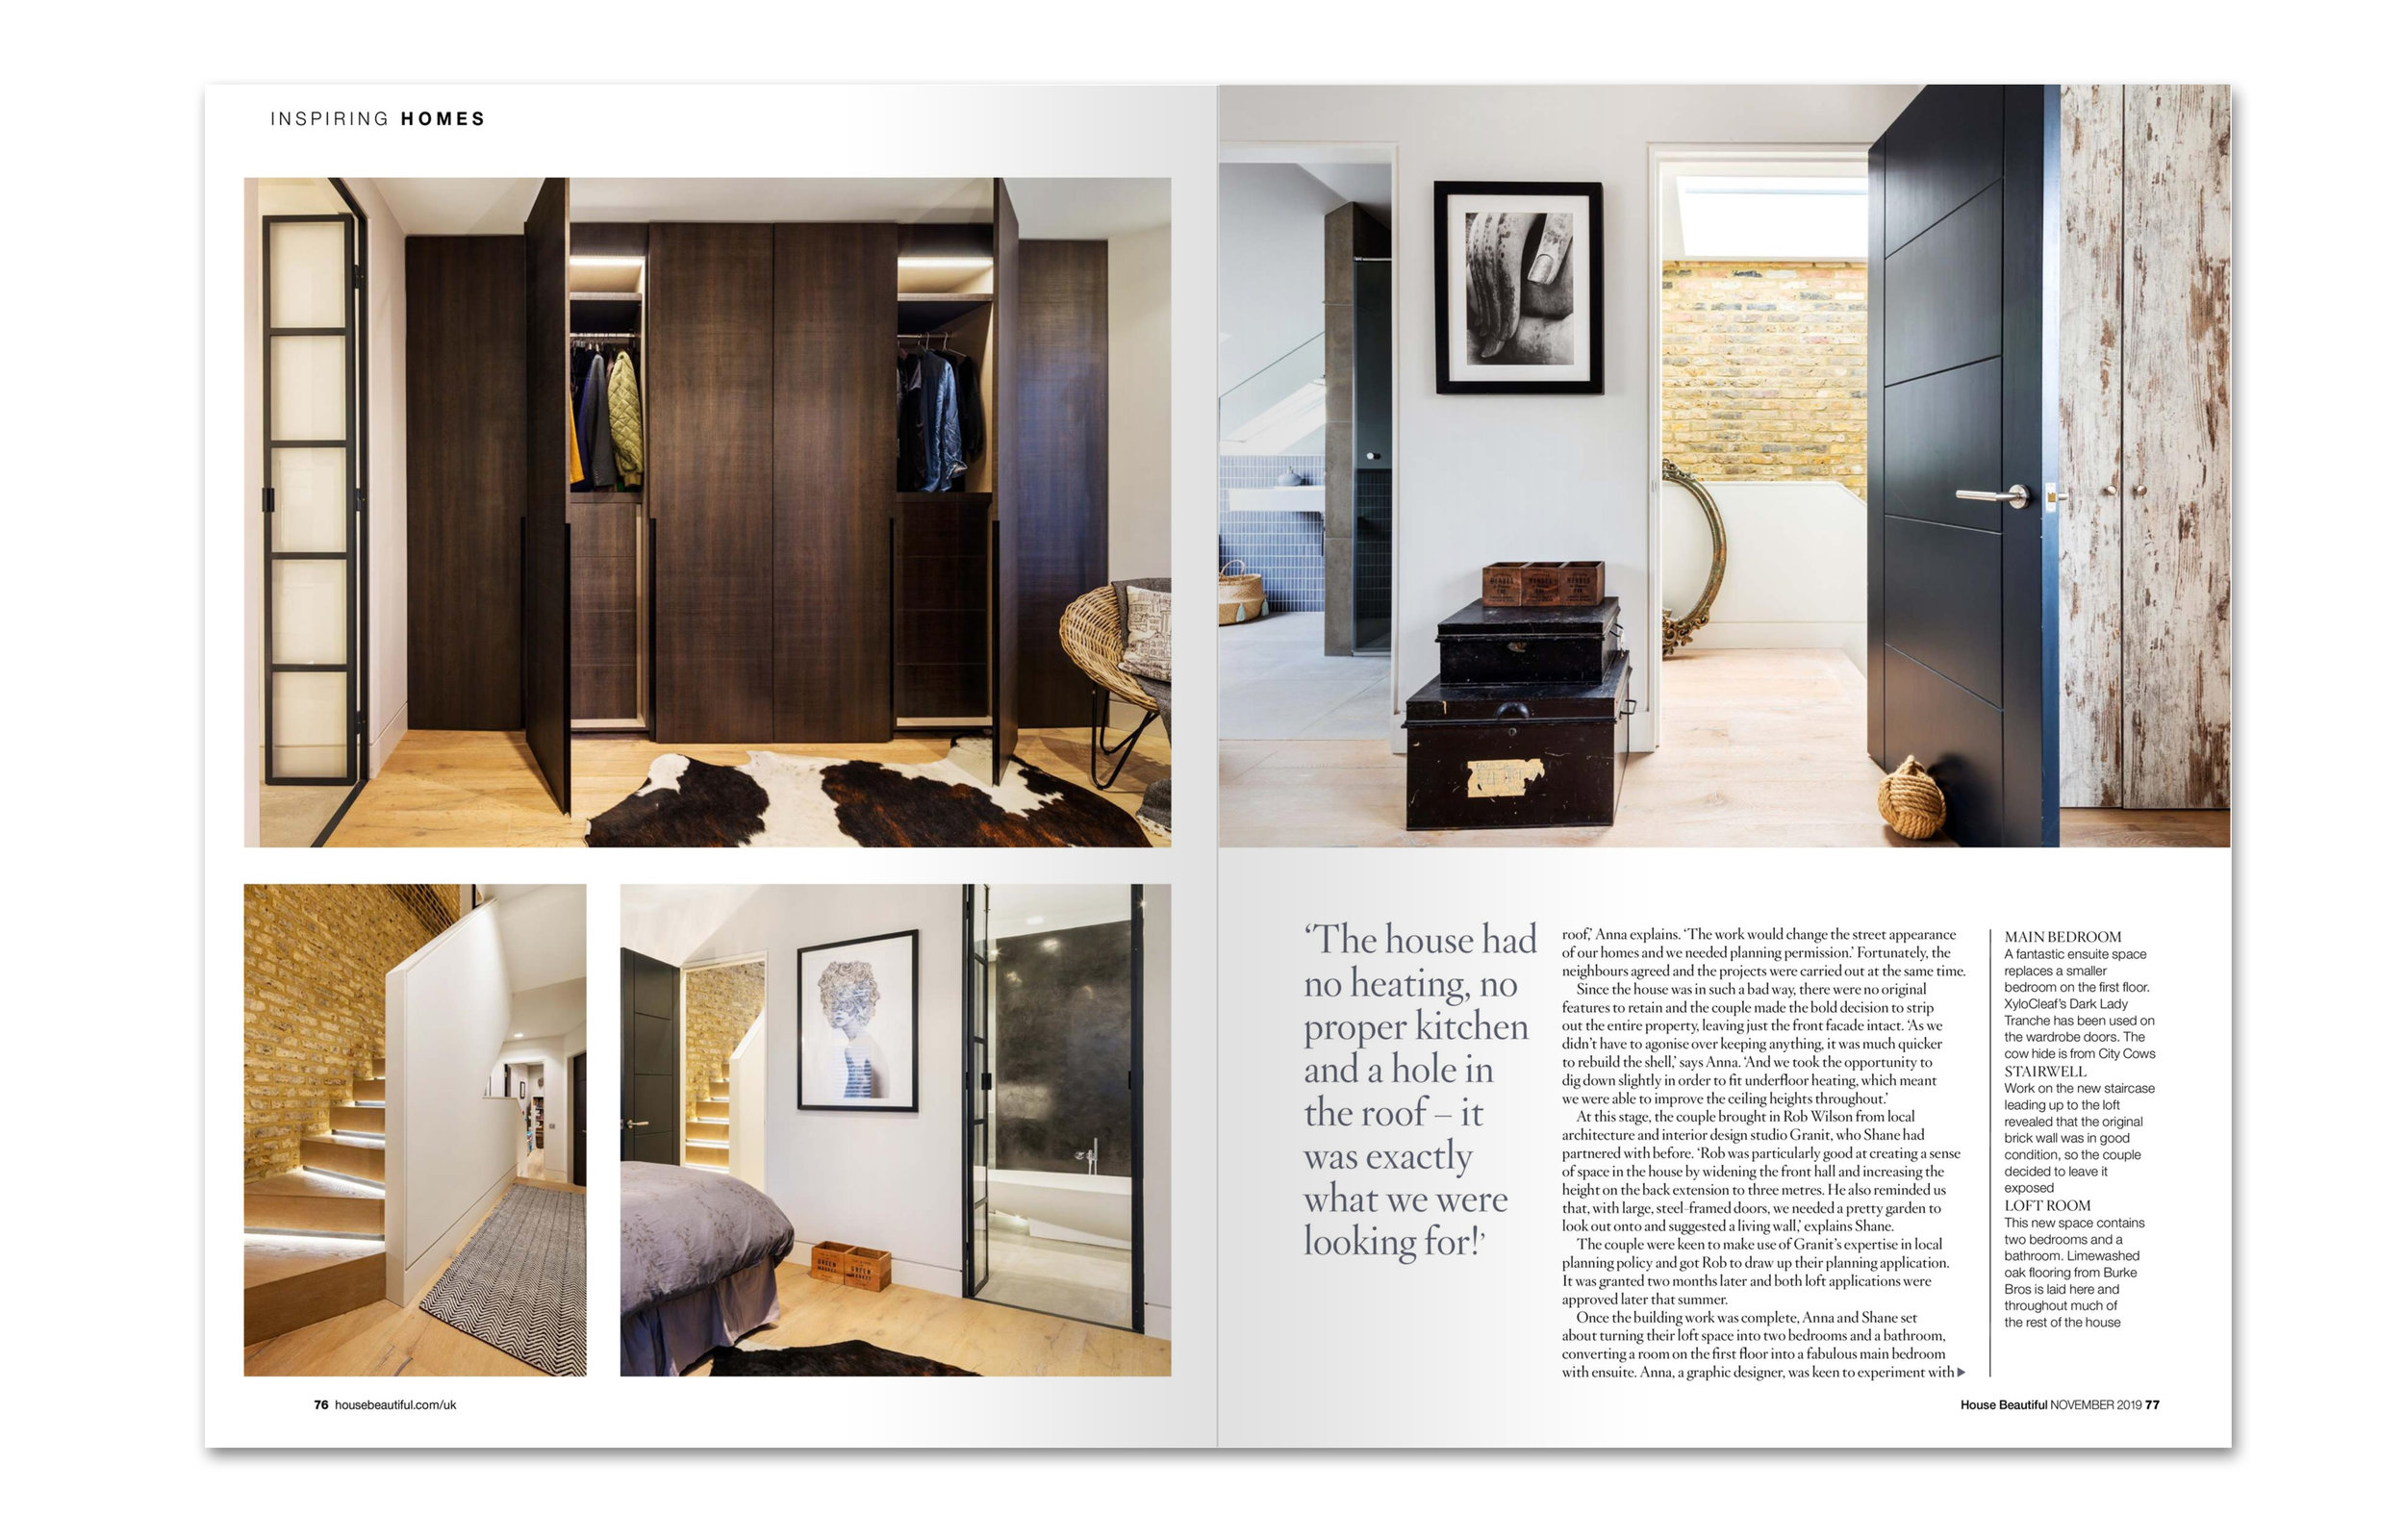 House Beautiful Nov 2019_02 Article Page 76-77.jpg